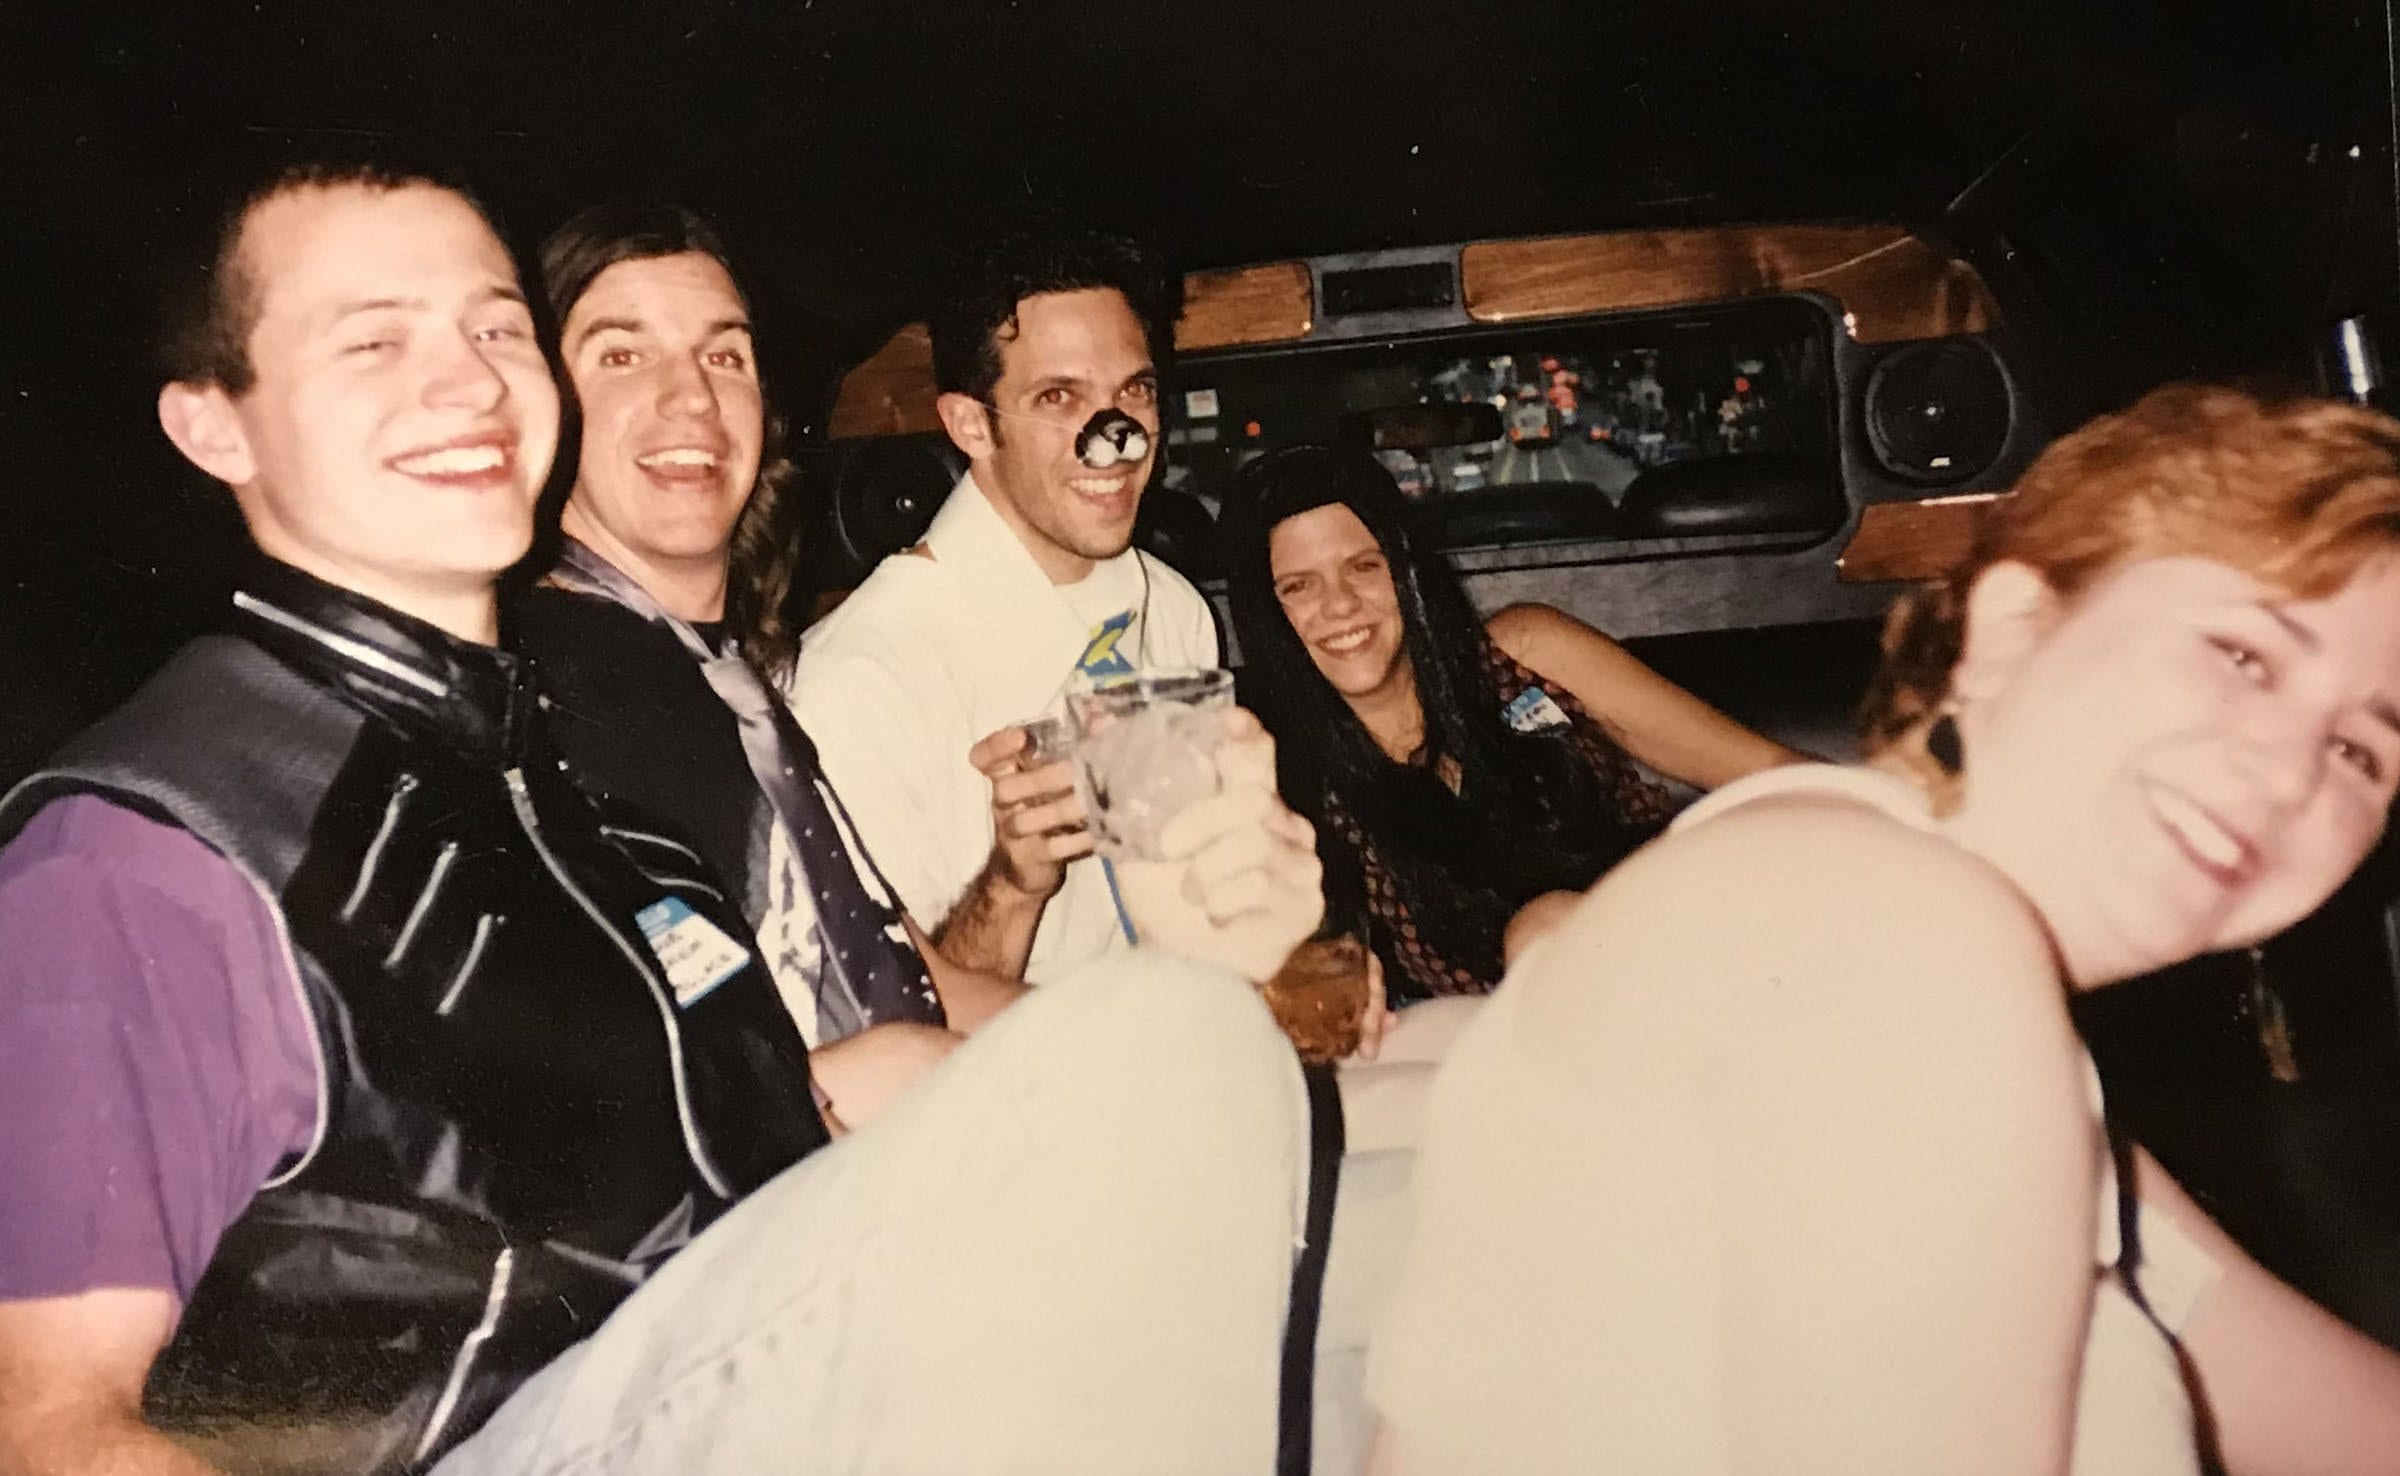 b758e2d99 L to R: Greg Bolsinga, Brian Chard, Andy Poland, Lisa Helfer, Marta Segal.  On our way (as Smushes) to a You Don't Know Jack release party thrown by  Berkeley ...